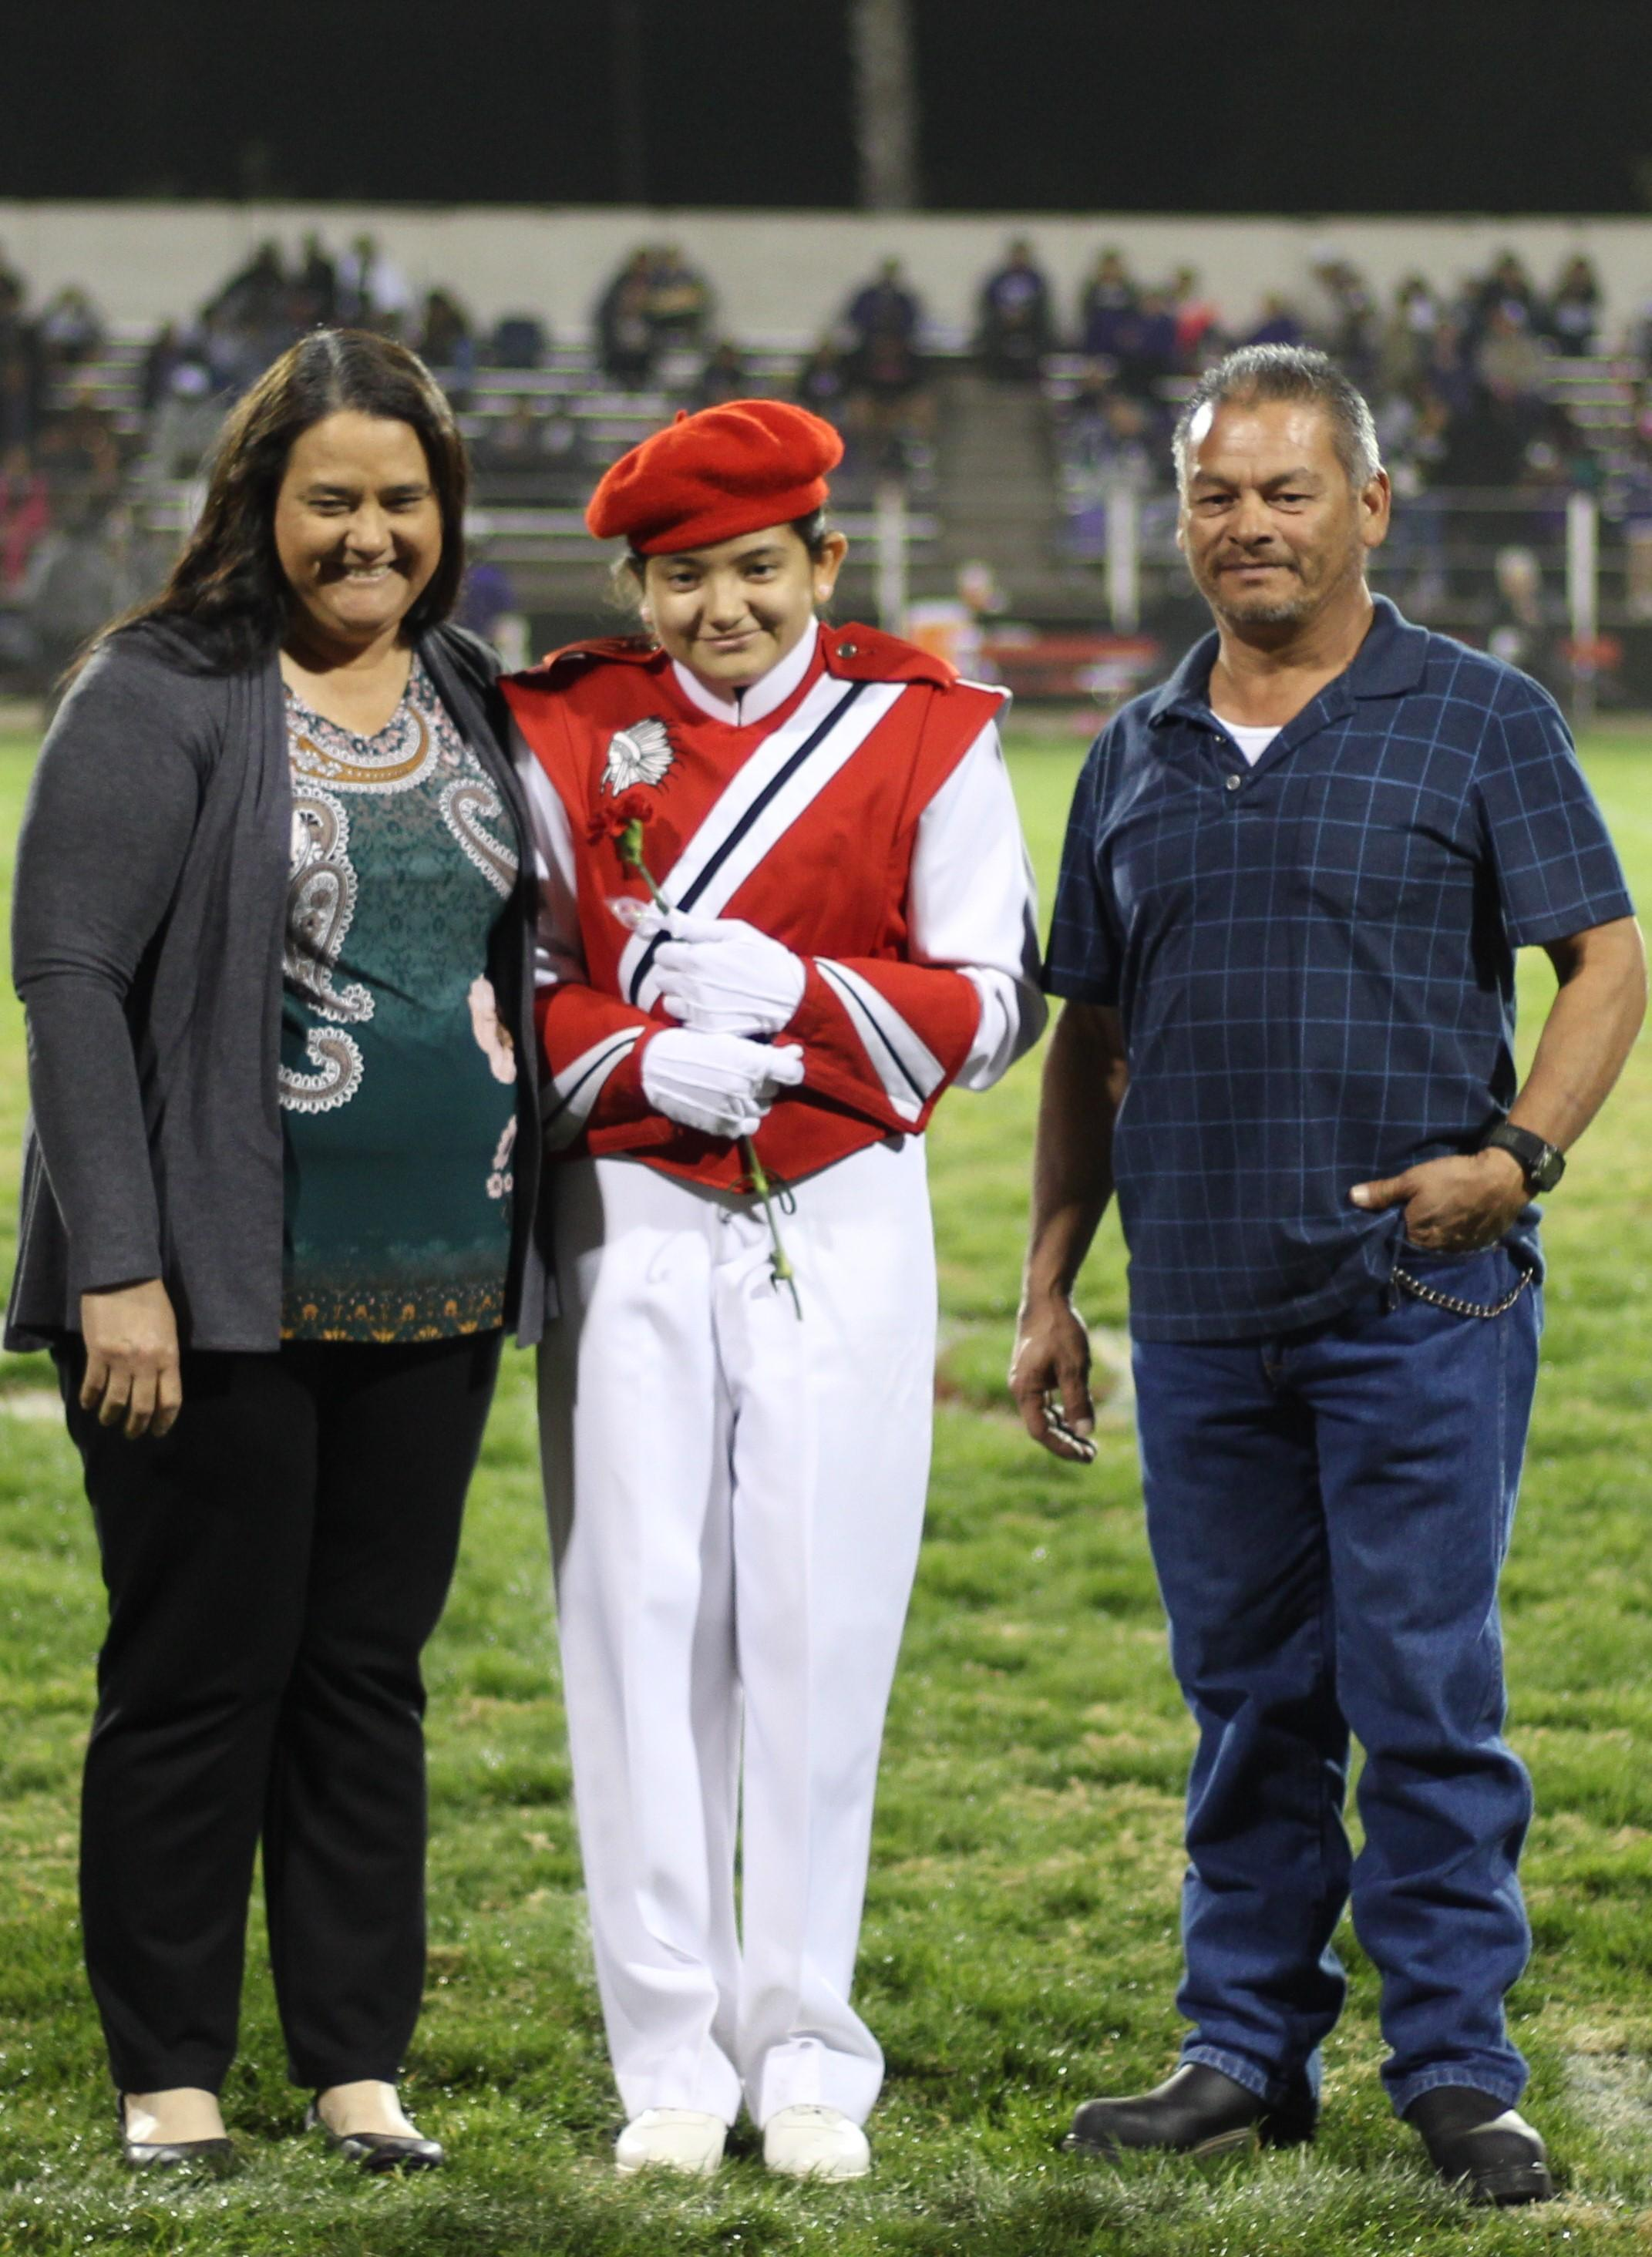 Senior band member Leanna Perales and her escorts.